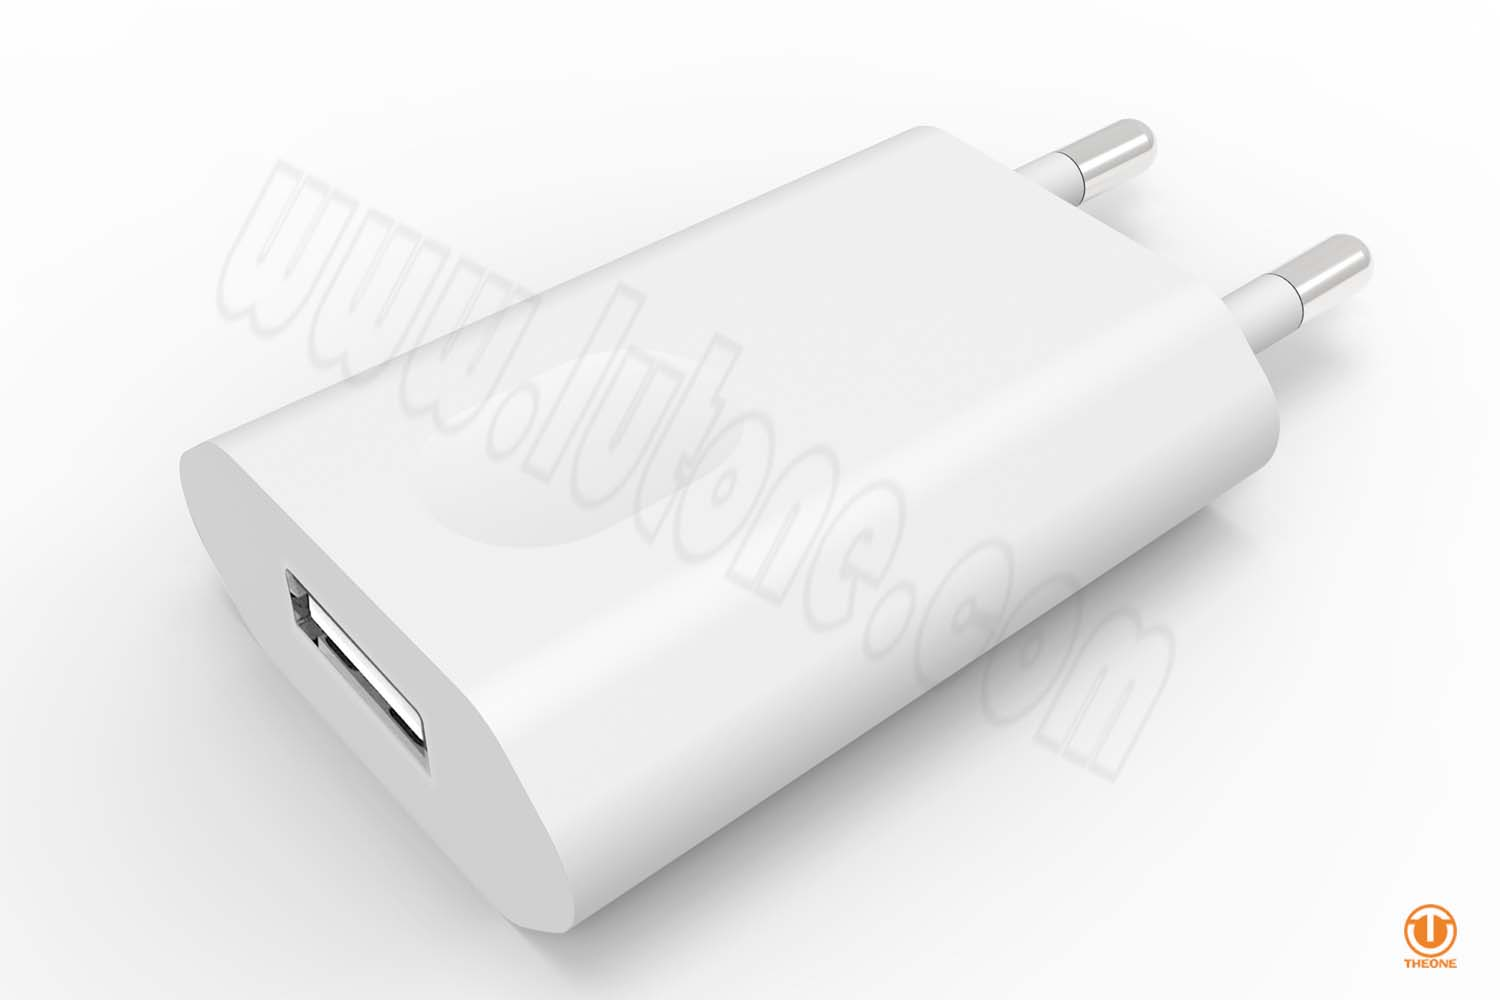 tc03b4-3 usb wall charger travel charger